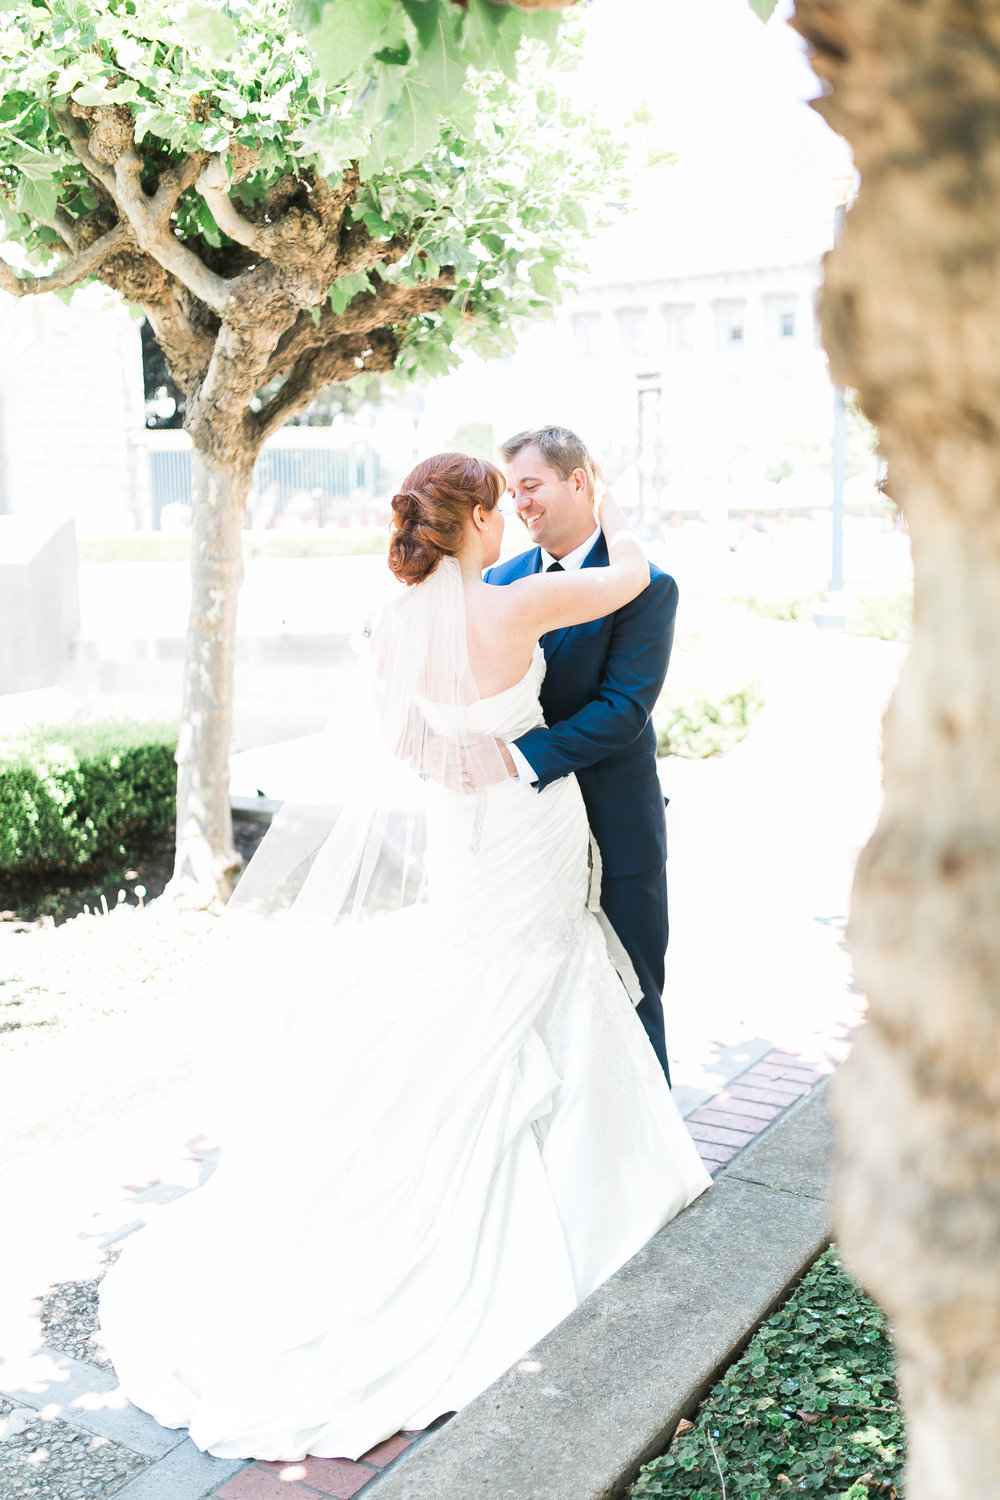 first look wedding day bride and groom wedding photos las vegas wedding planner J.Anne Photography